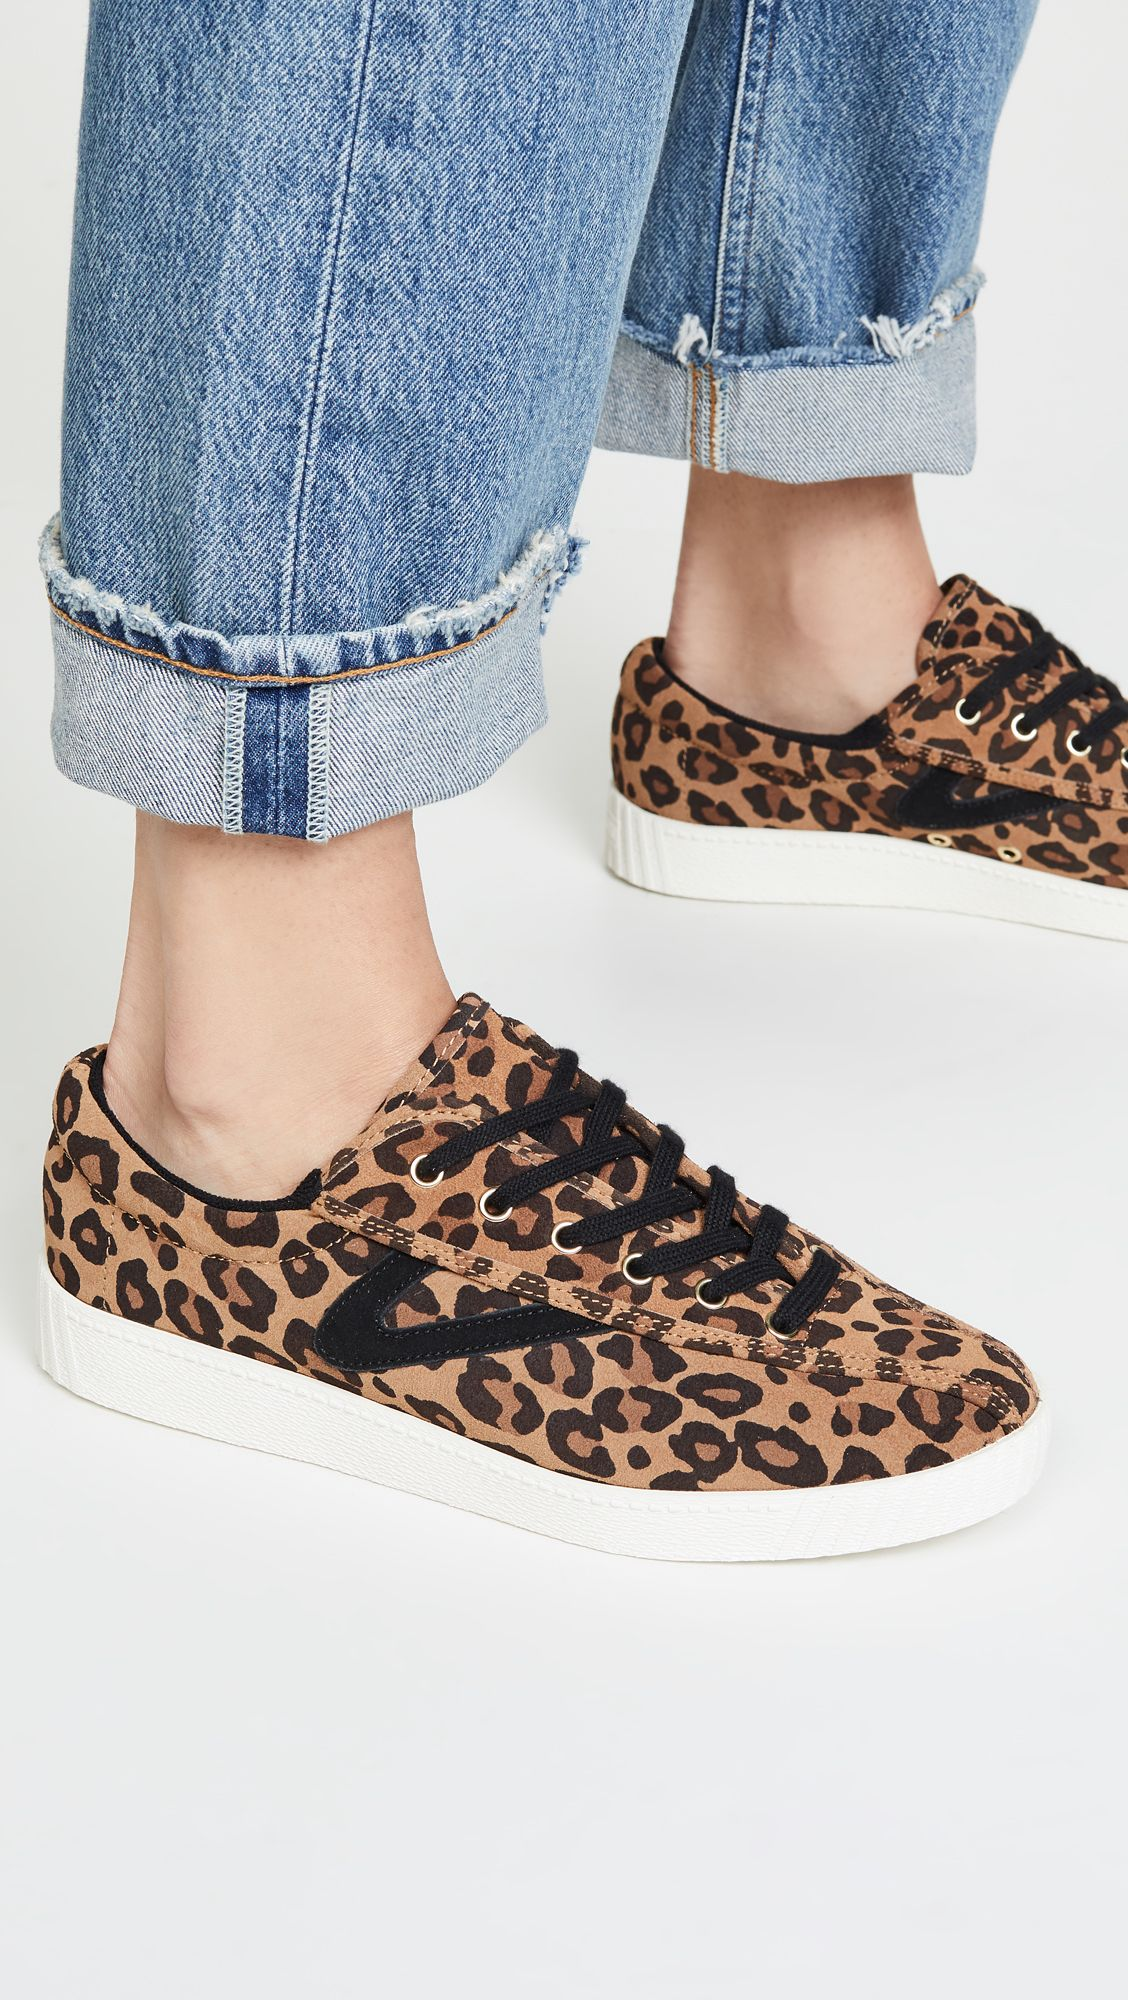 Autumn fashion casual, Sneakers, Lace